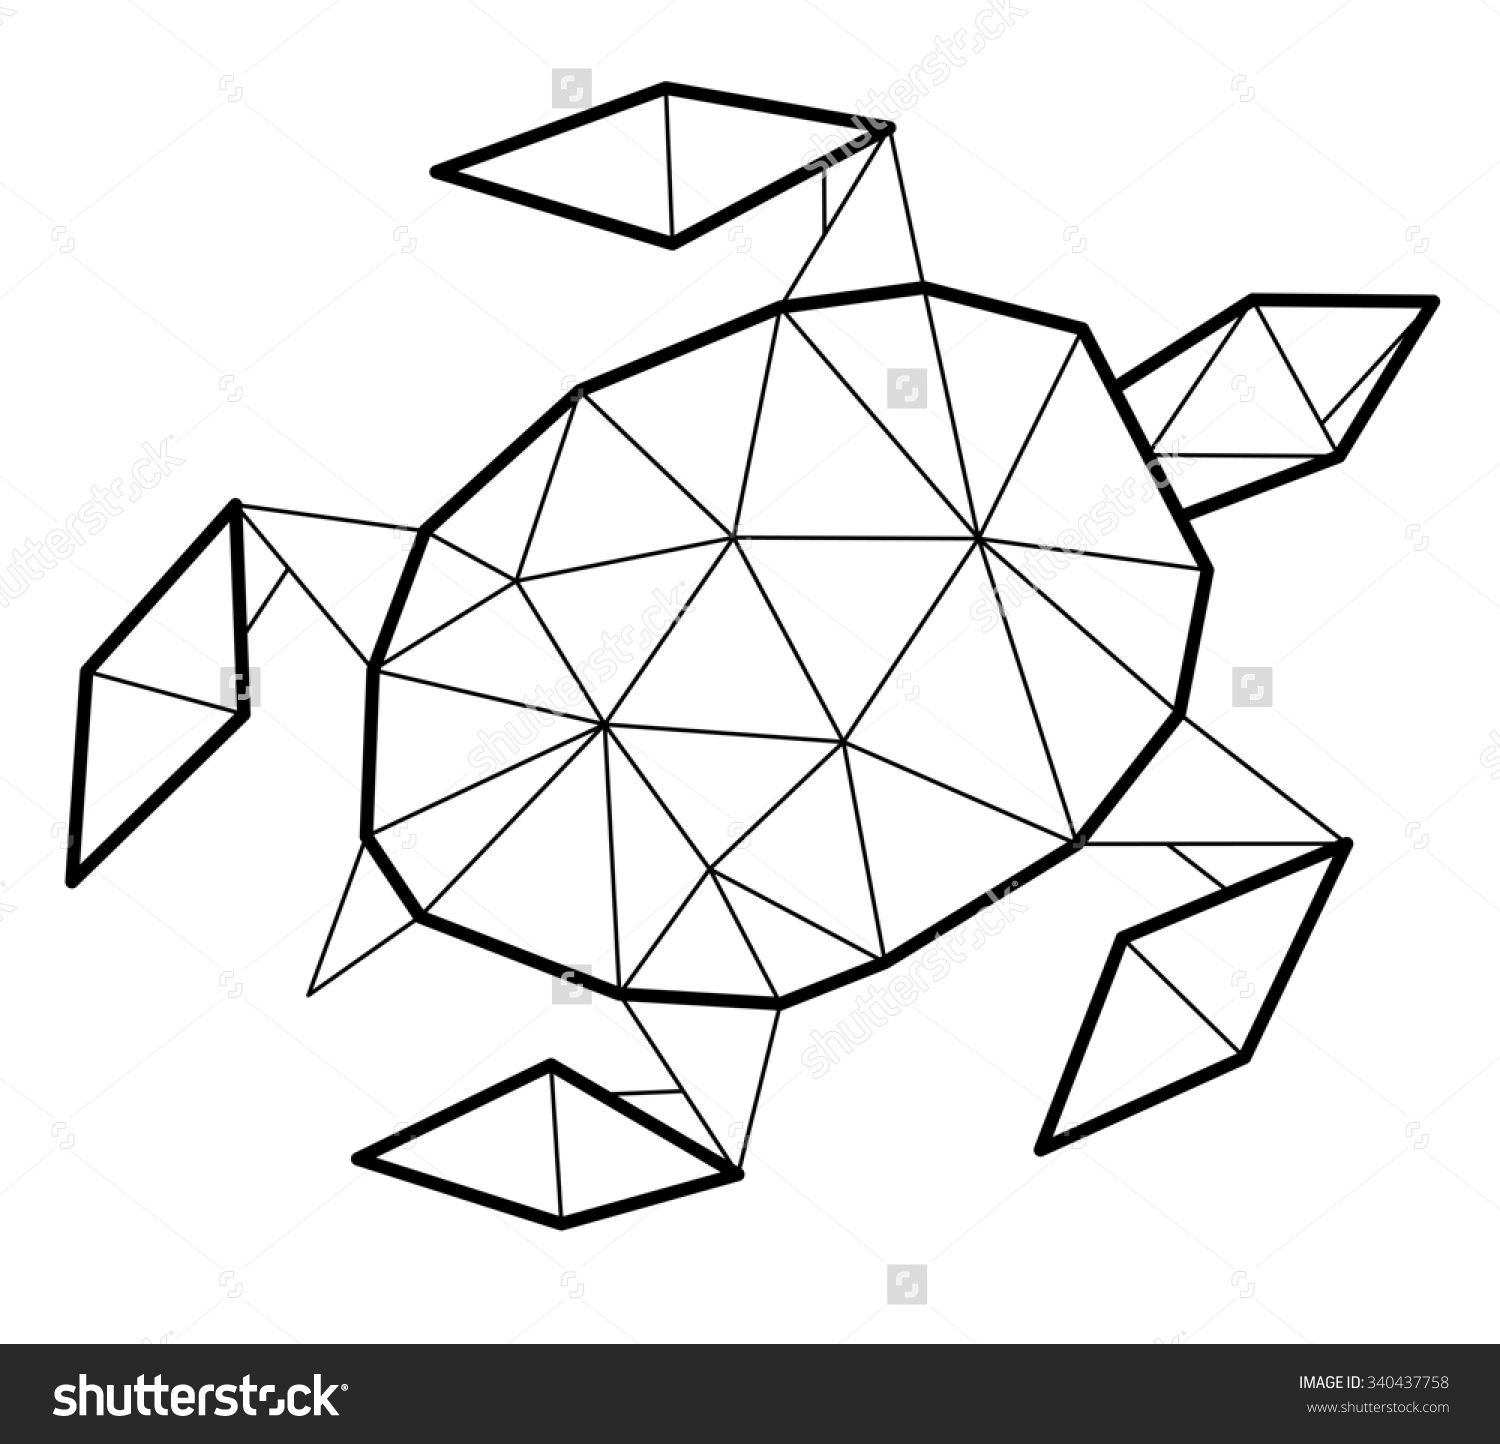 shapes turtle coloring pages - photo#33